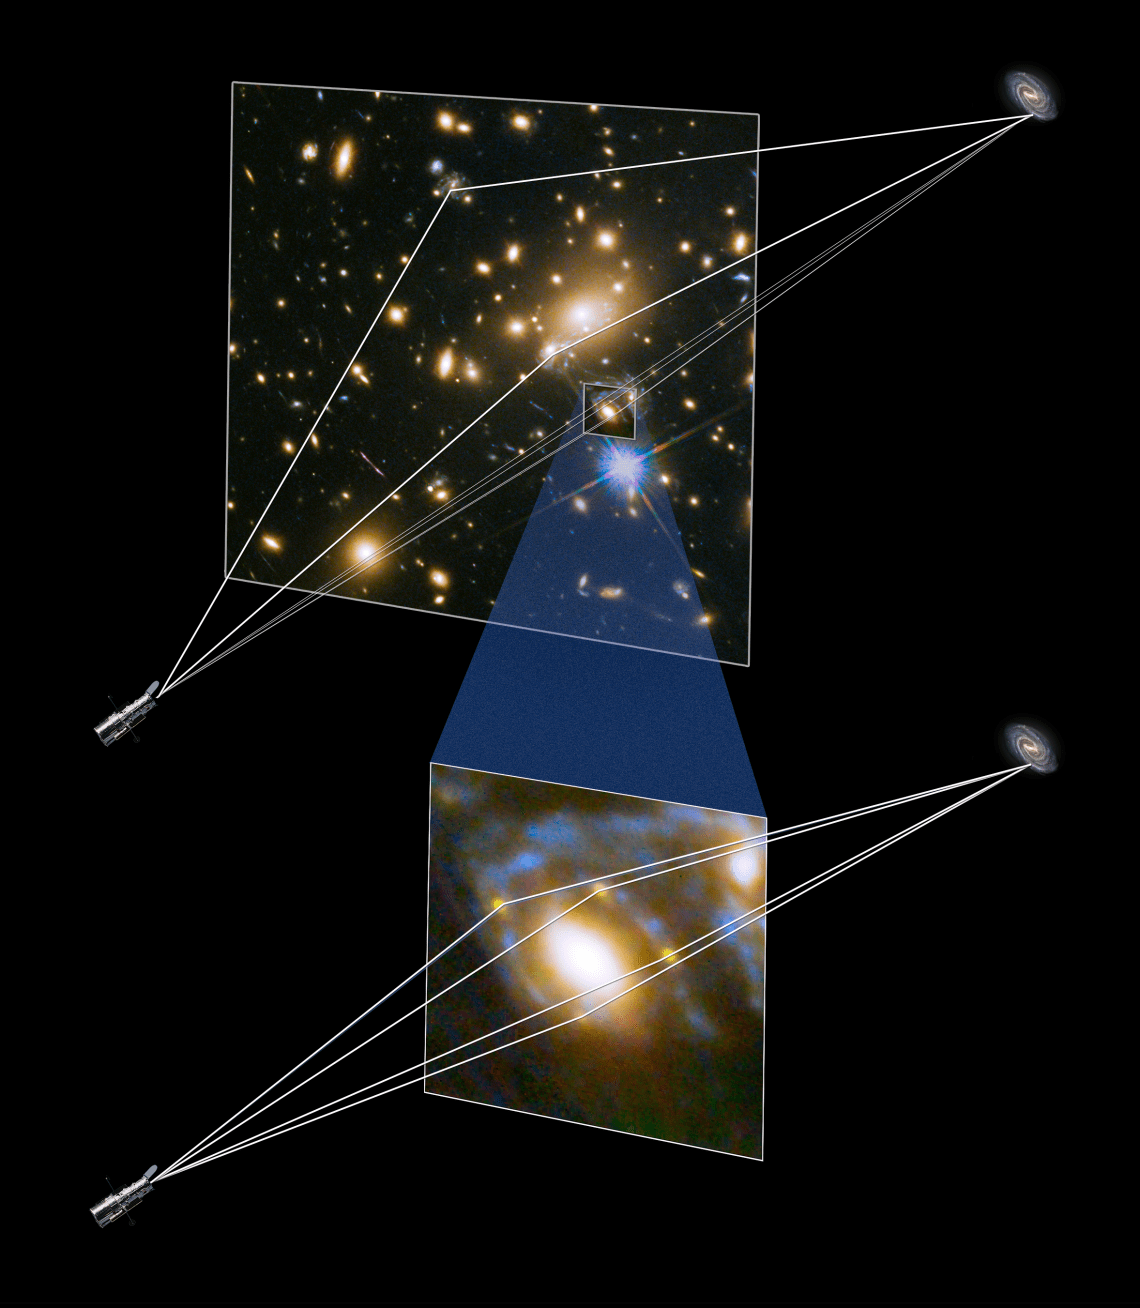 This illustration shows how four different images of the same supernova were created when its light was distorted and magnified by the huge galaxy cluster MACS J1149+2223 in front of it. The light has been magnified and distorted due to gravitational lensing and as a result the images are arranged around the elliptical galaxy in a formation known as an Einstein cross. The massive galaxy cluster focuses the supernova light along at least three separate paths, and then when one  of those light paths happens to be precisely aligned with a single elliptical galaxy within the cluster, a secondary  lensing effect occurs. The dark matter associated with the elliptical galaxy bends and refocuses the light into four more paths, generating the rare Einstein cross pattern that the team observed.    Credit: NASA & ESA